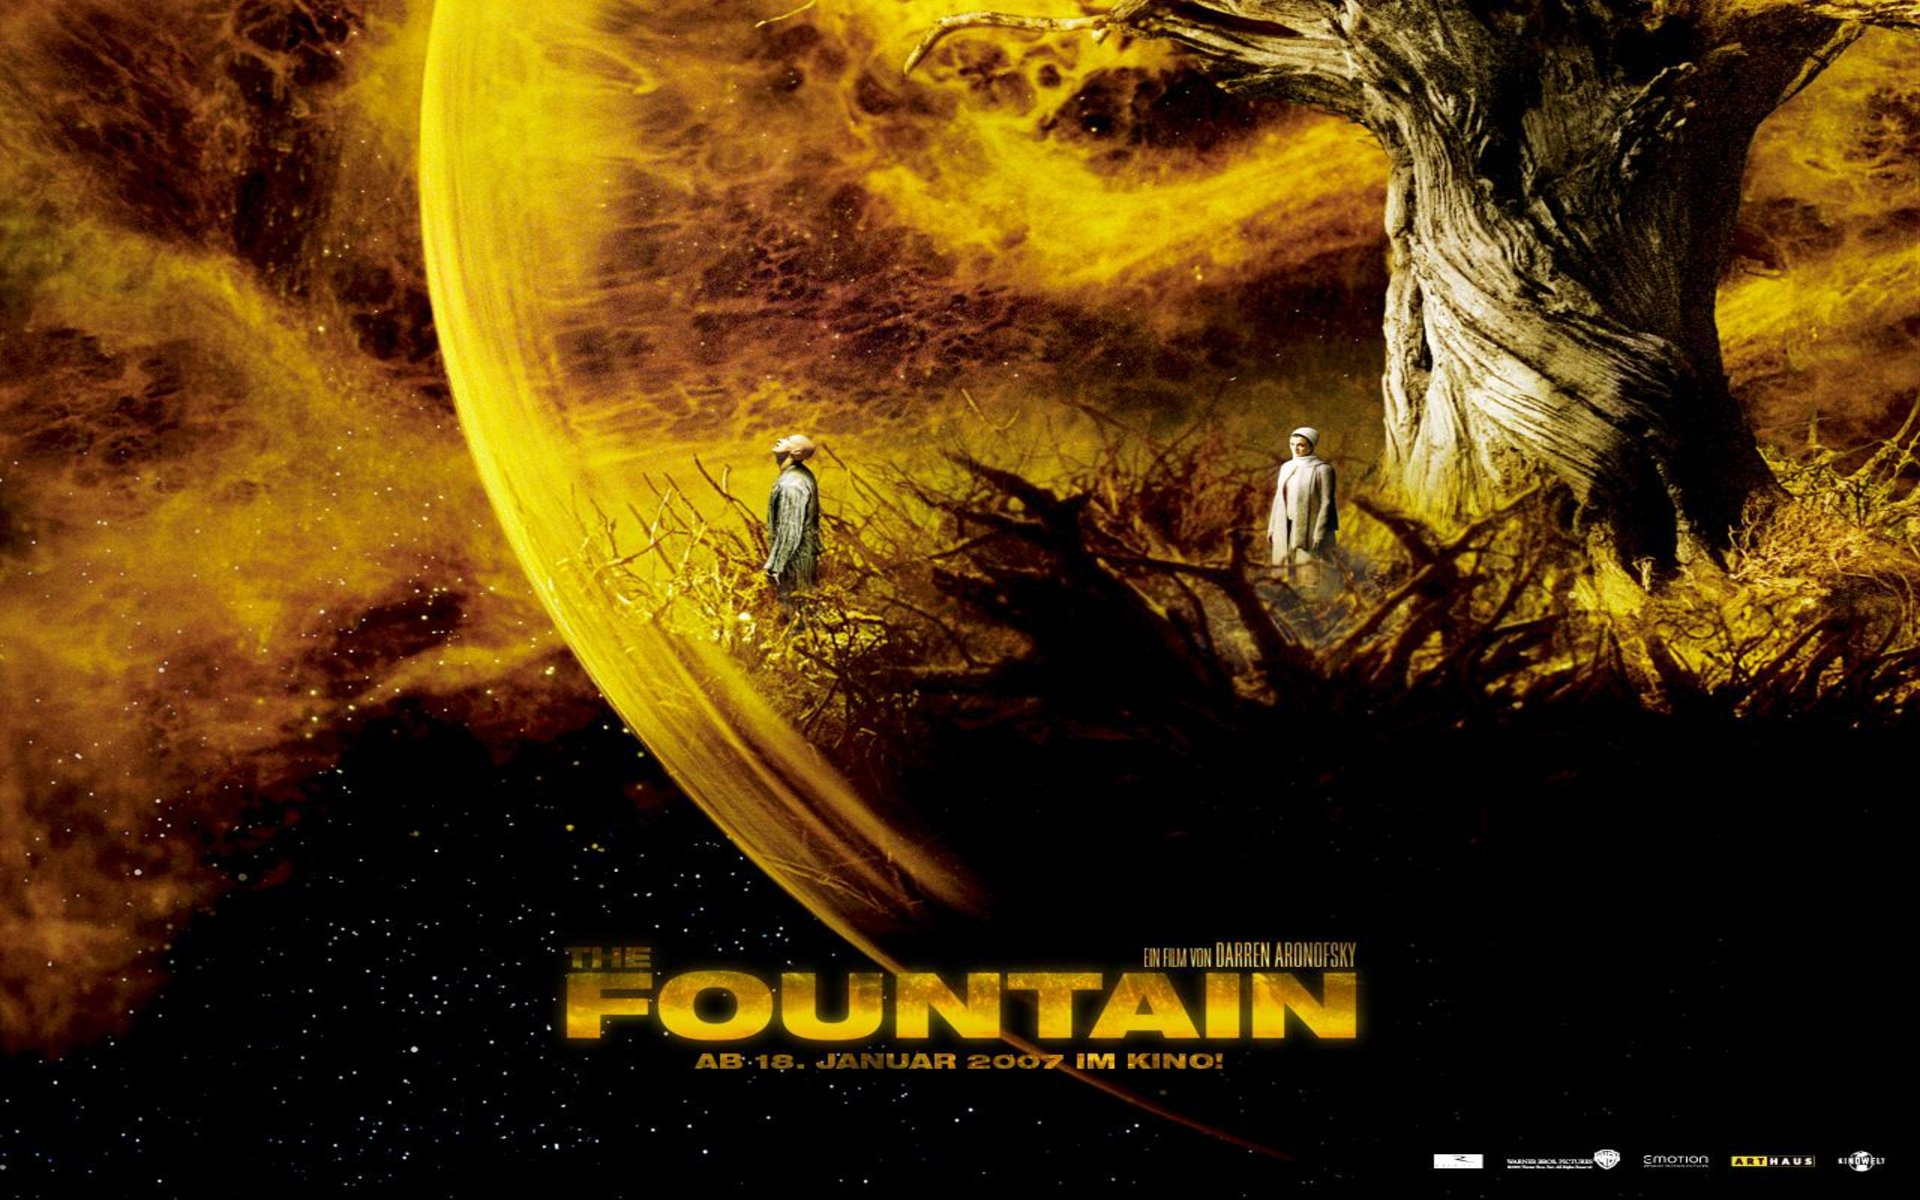 THE FOUNTAIN drama romance sci-fi fantasy movie film (18 ...